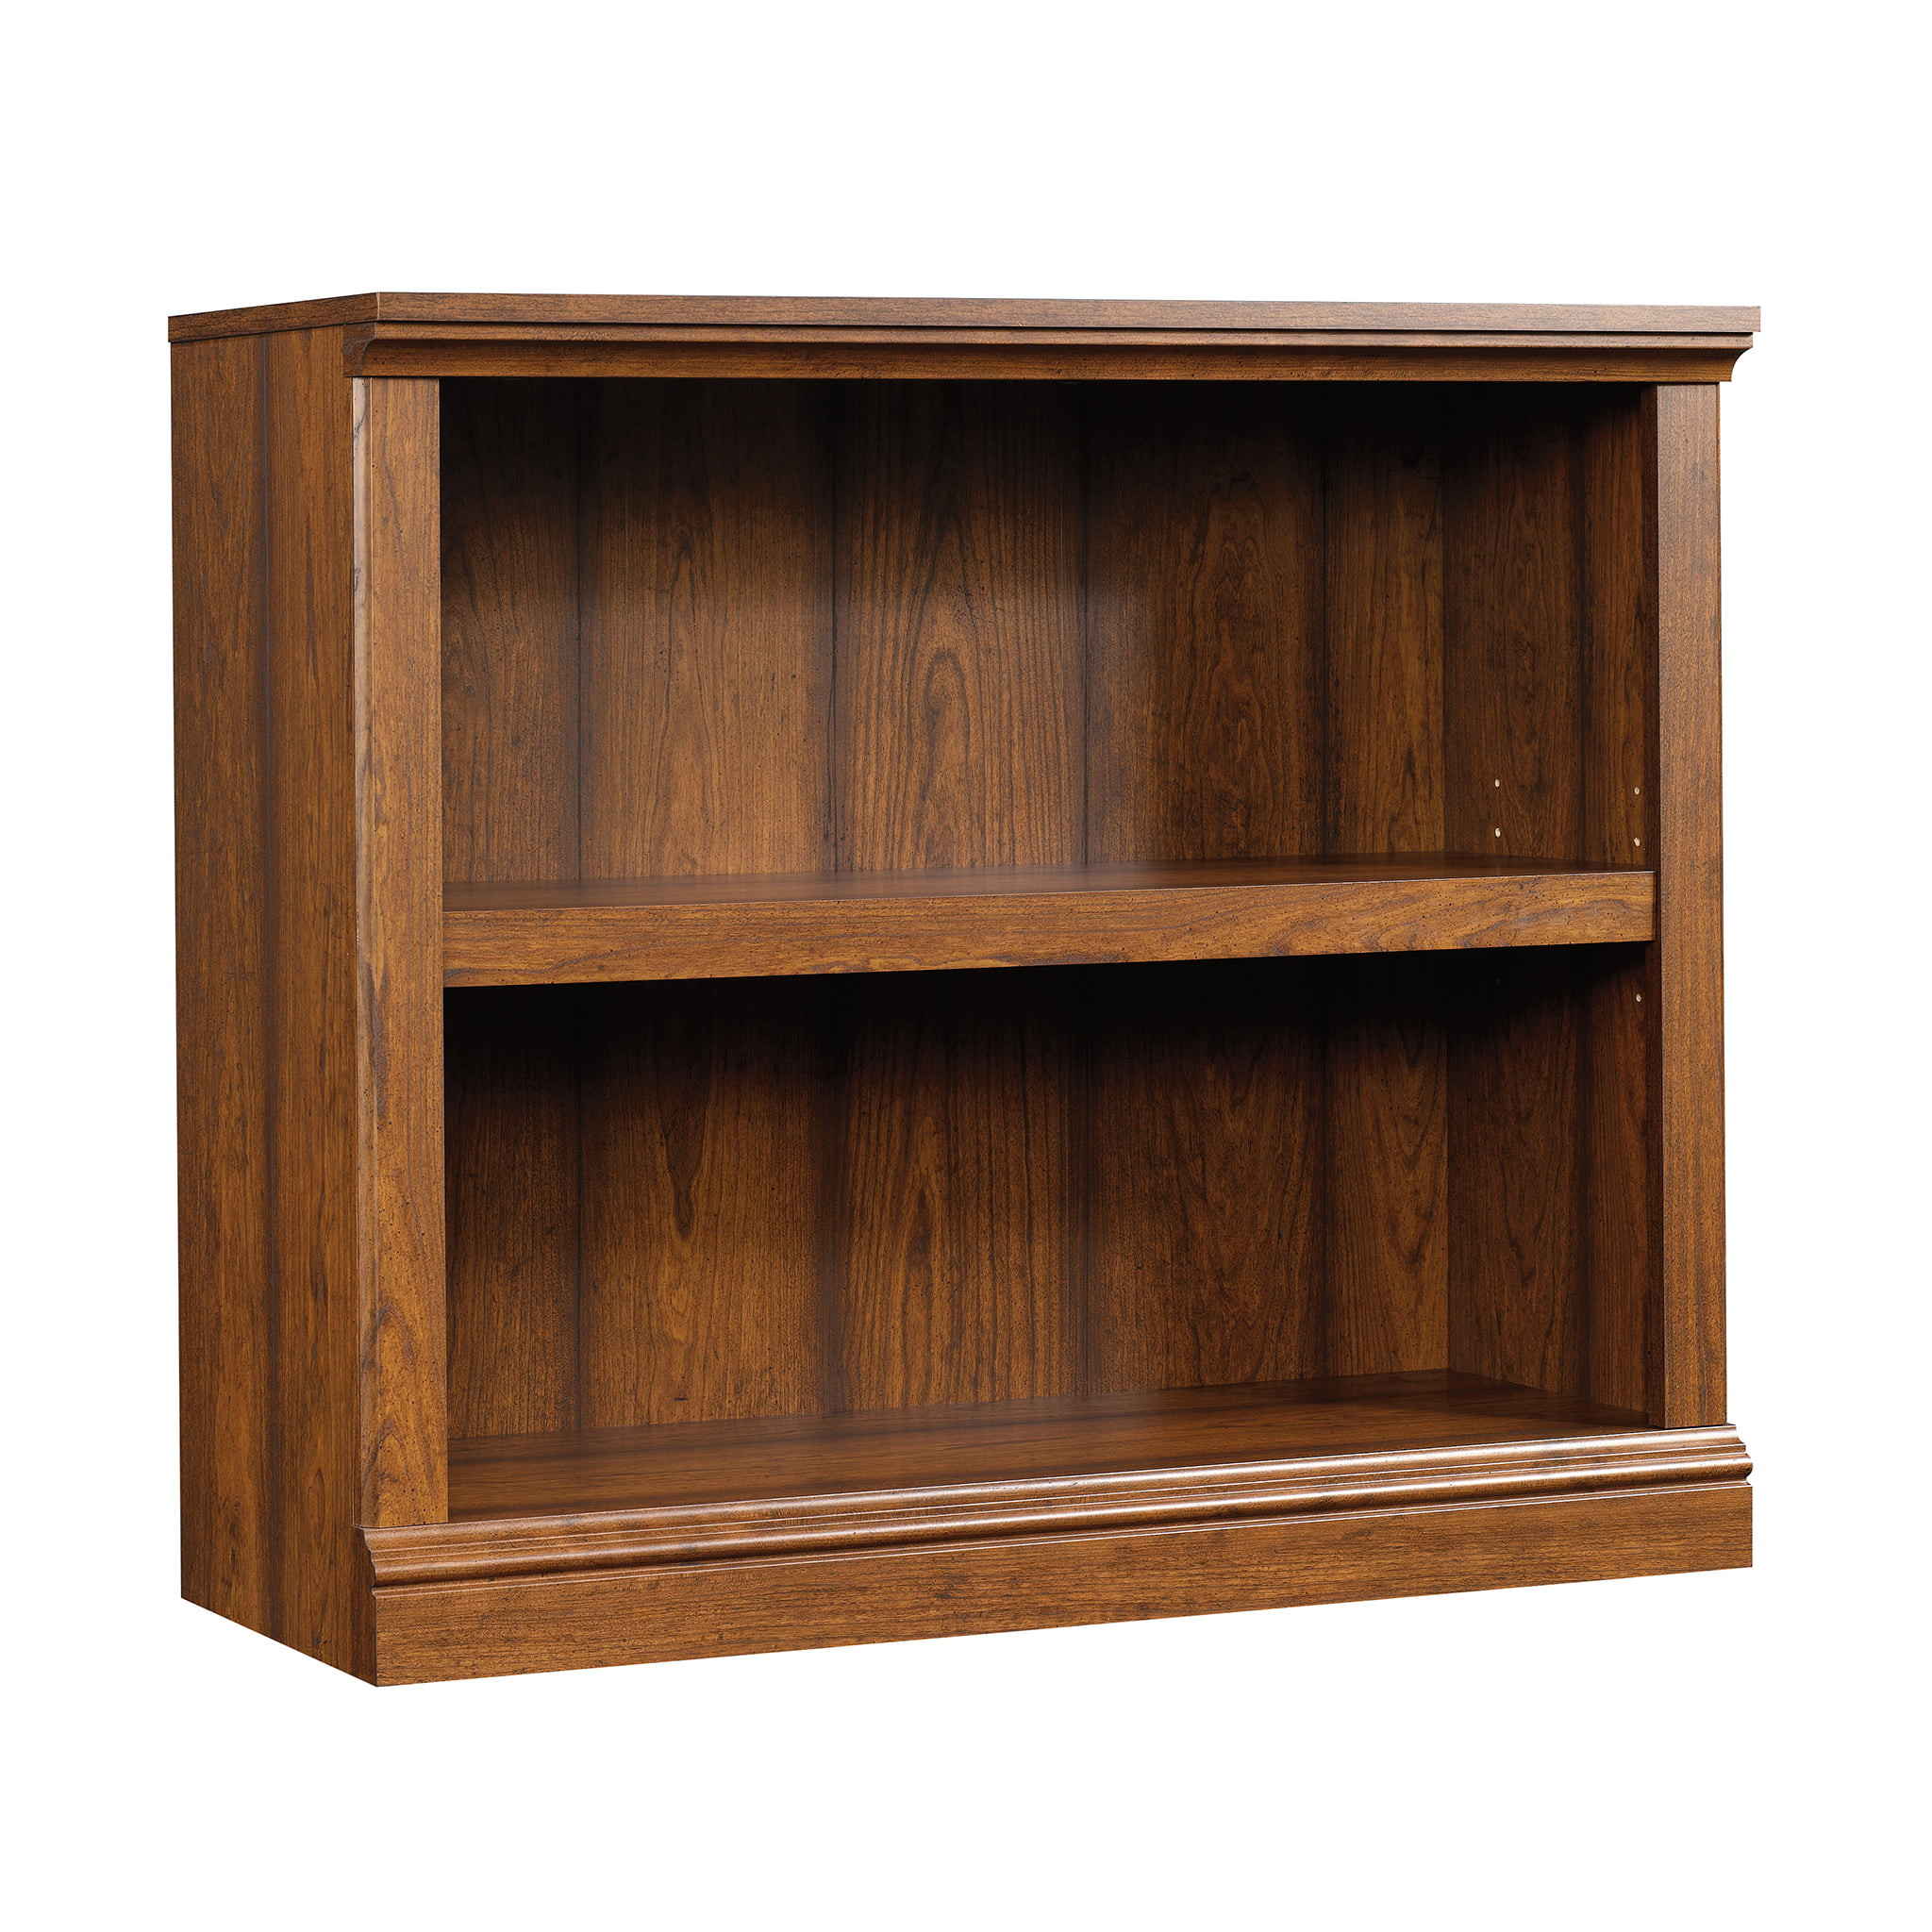 img table build fine blueprint enclosed wooden trestle plans index bookcase woodworking bookcases download